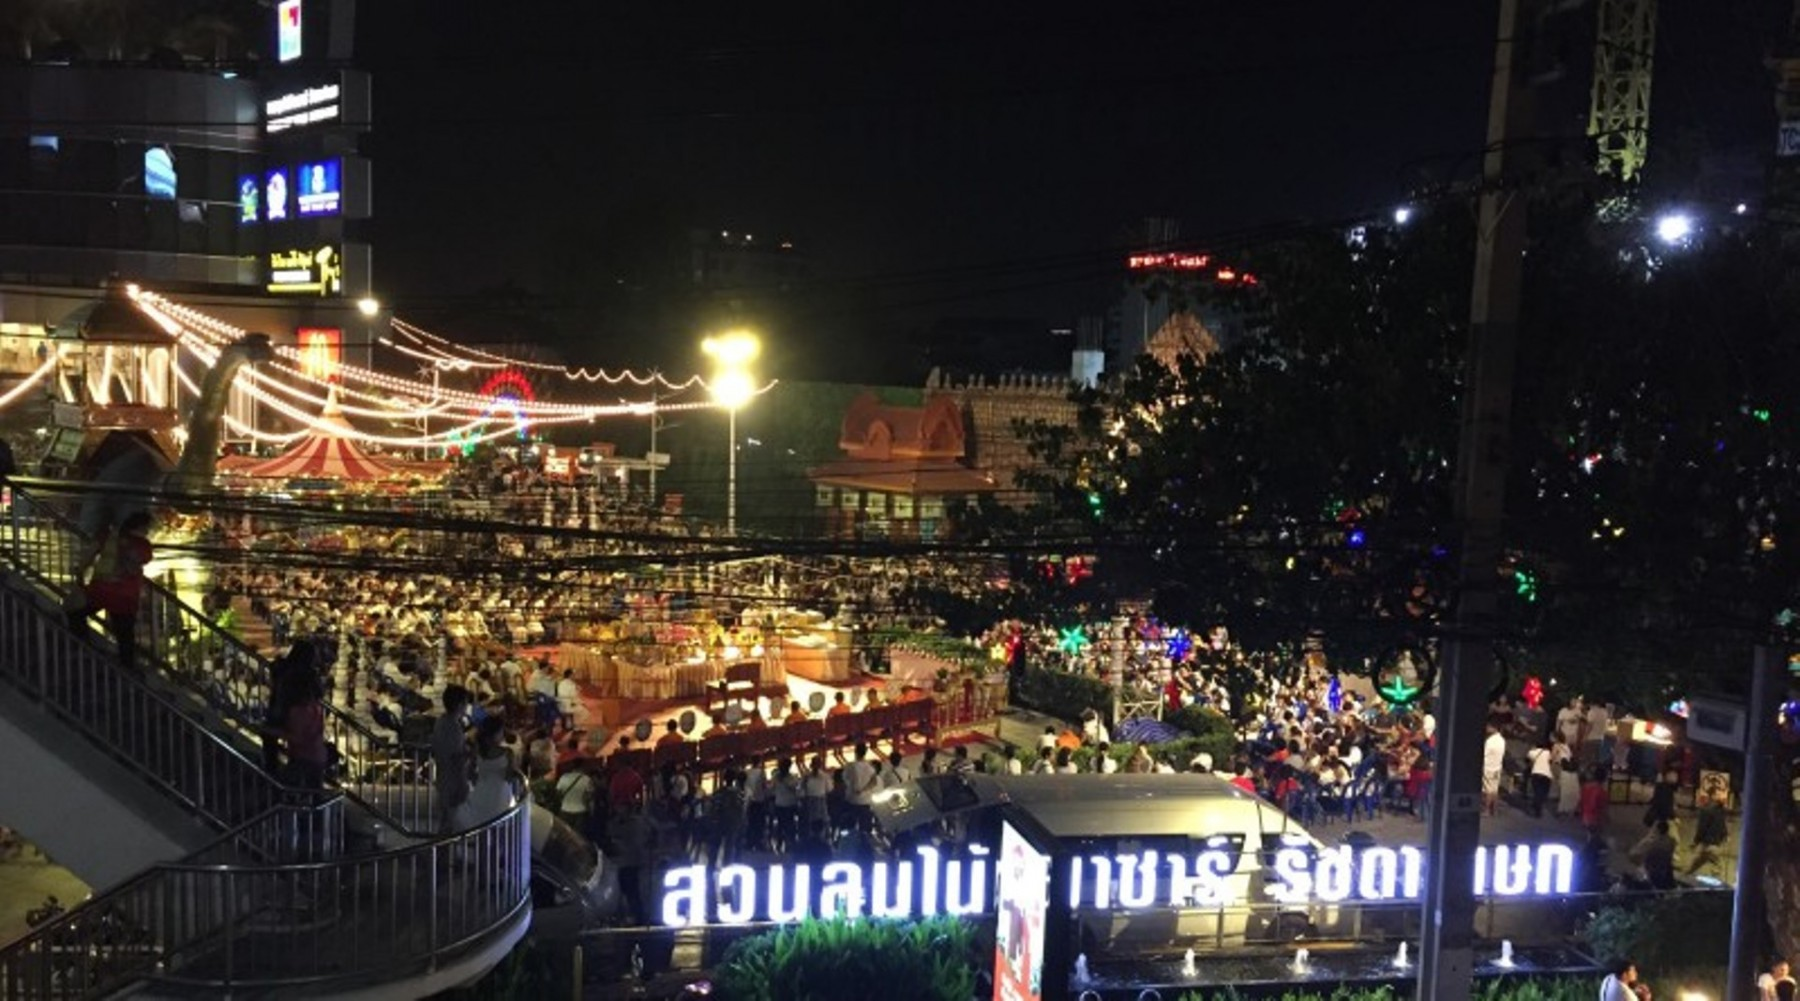 suan-lum-night-bazaar-ratchadaphisek